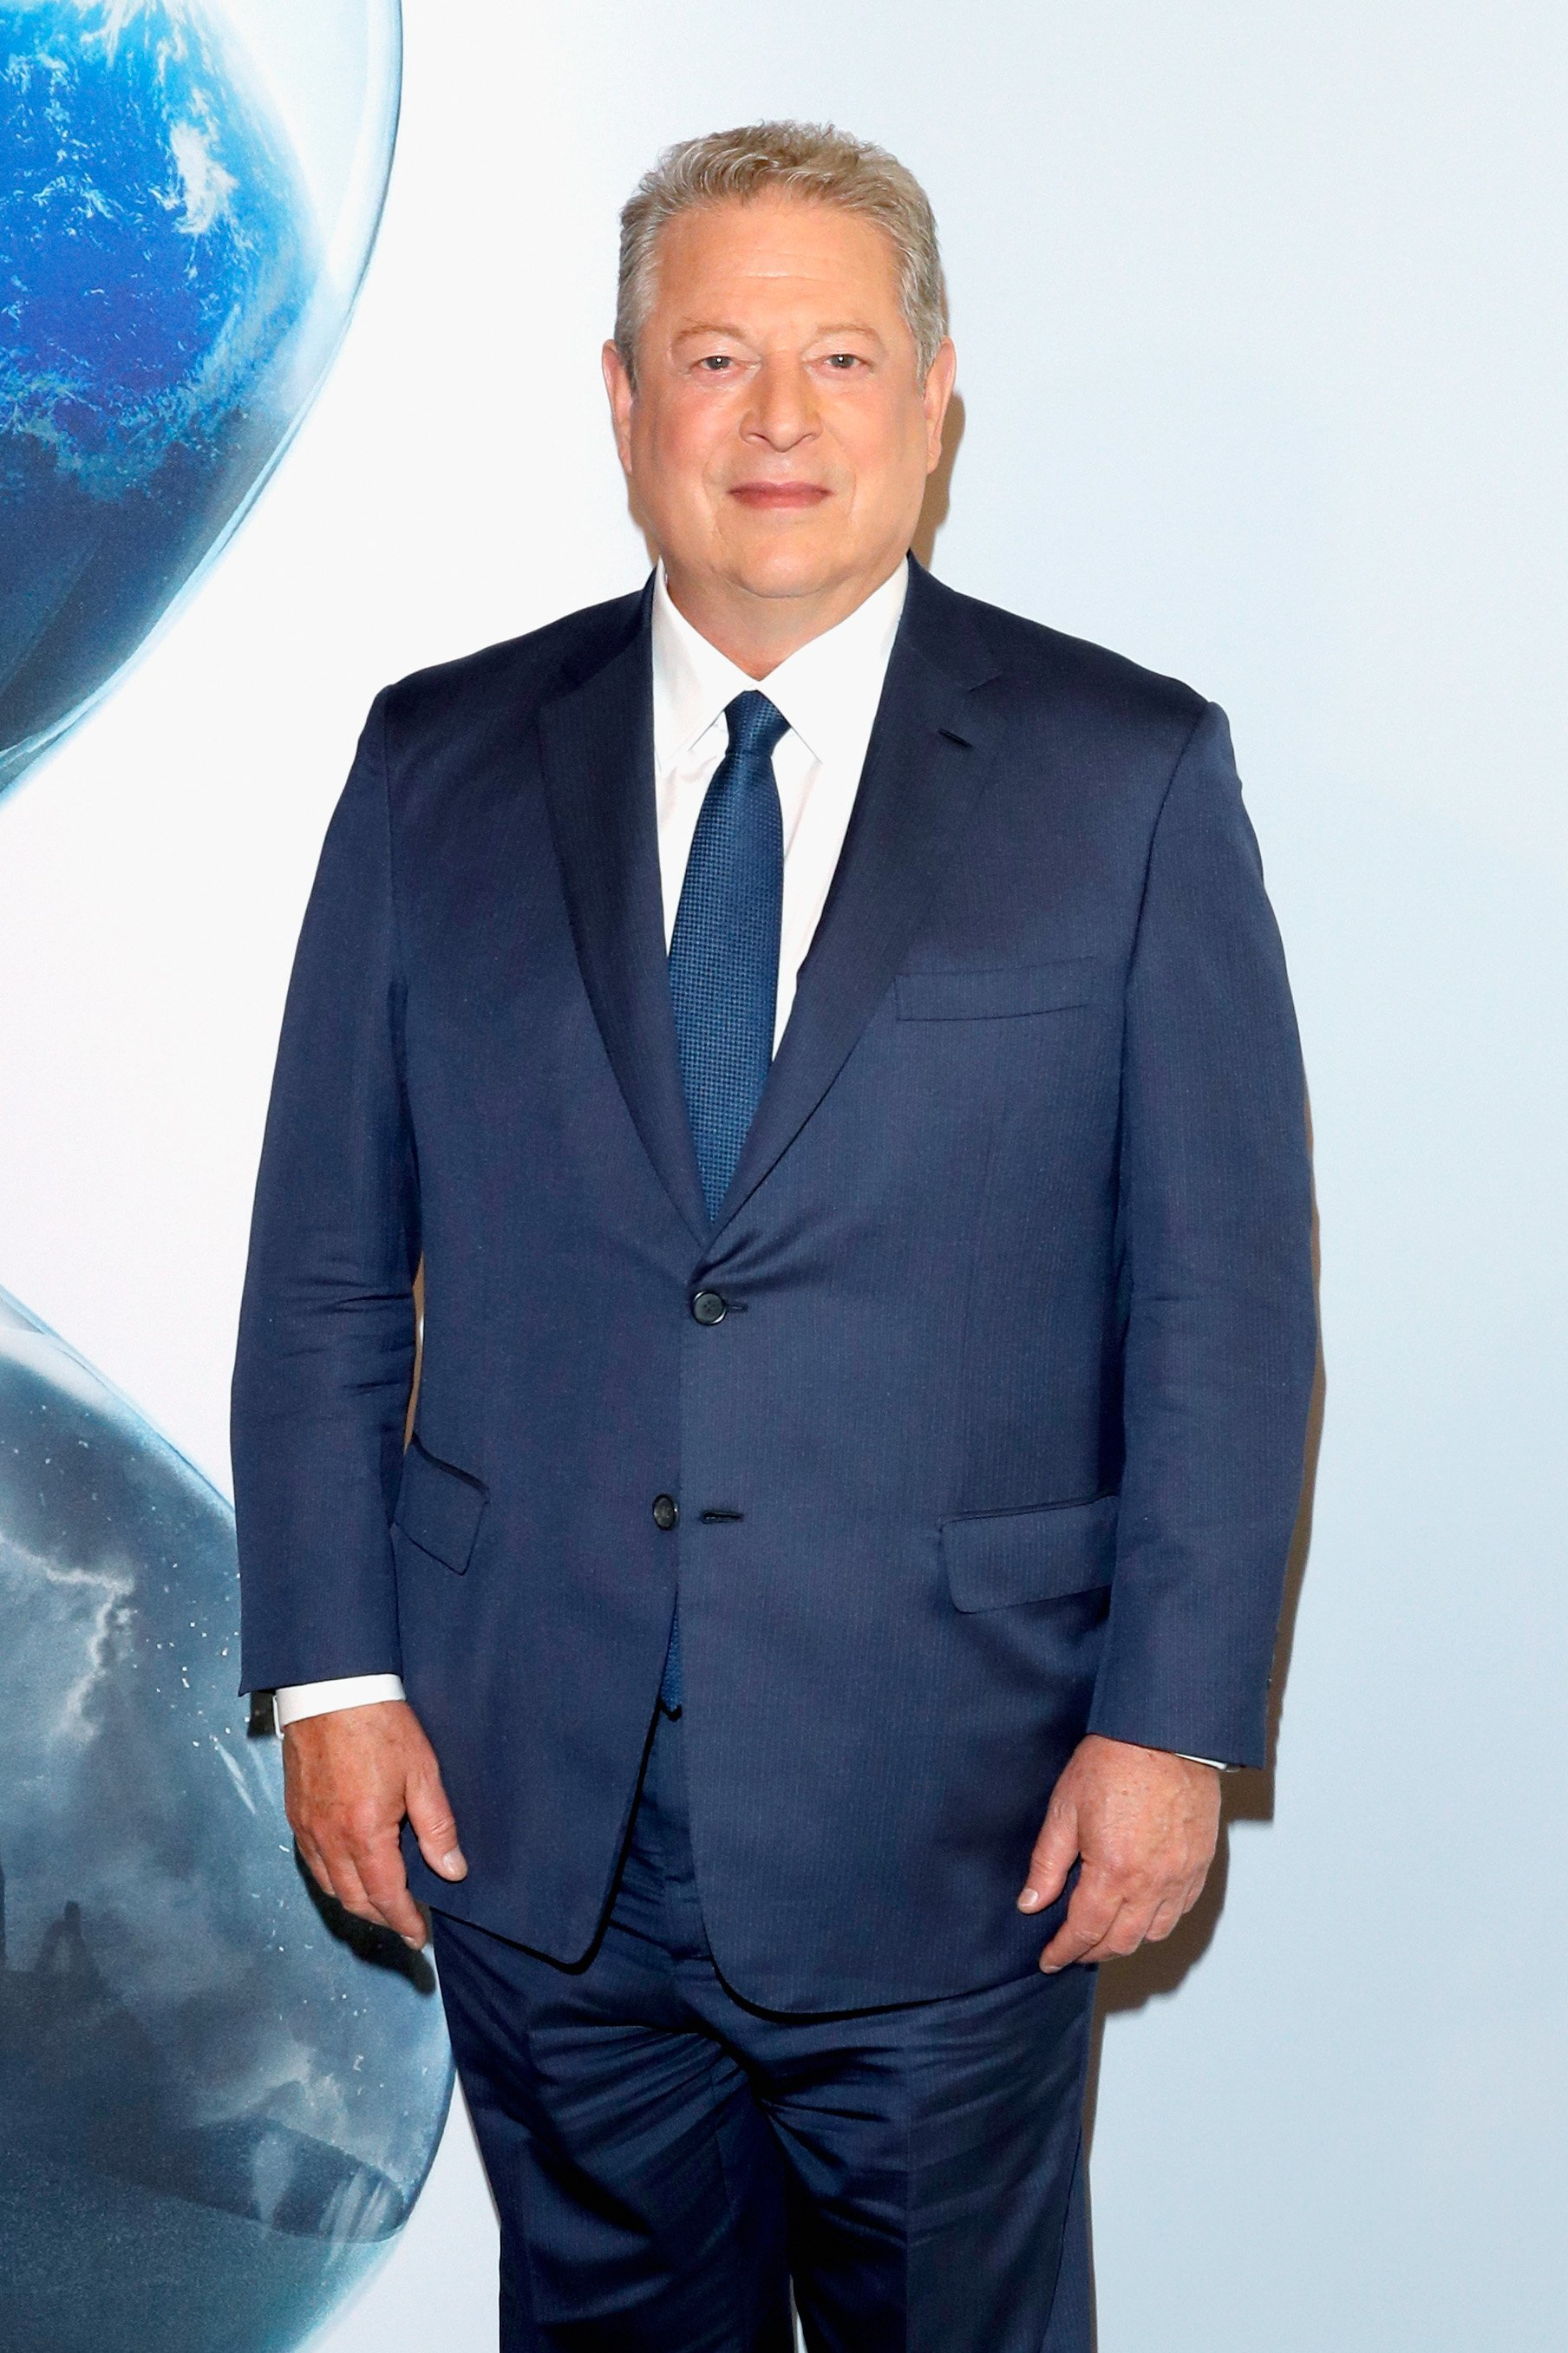 Former Vice President Al Gore. I Image: Getty Images.